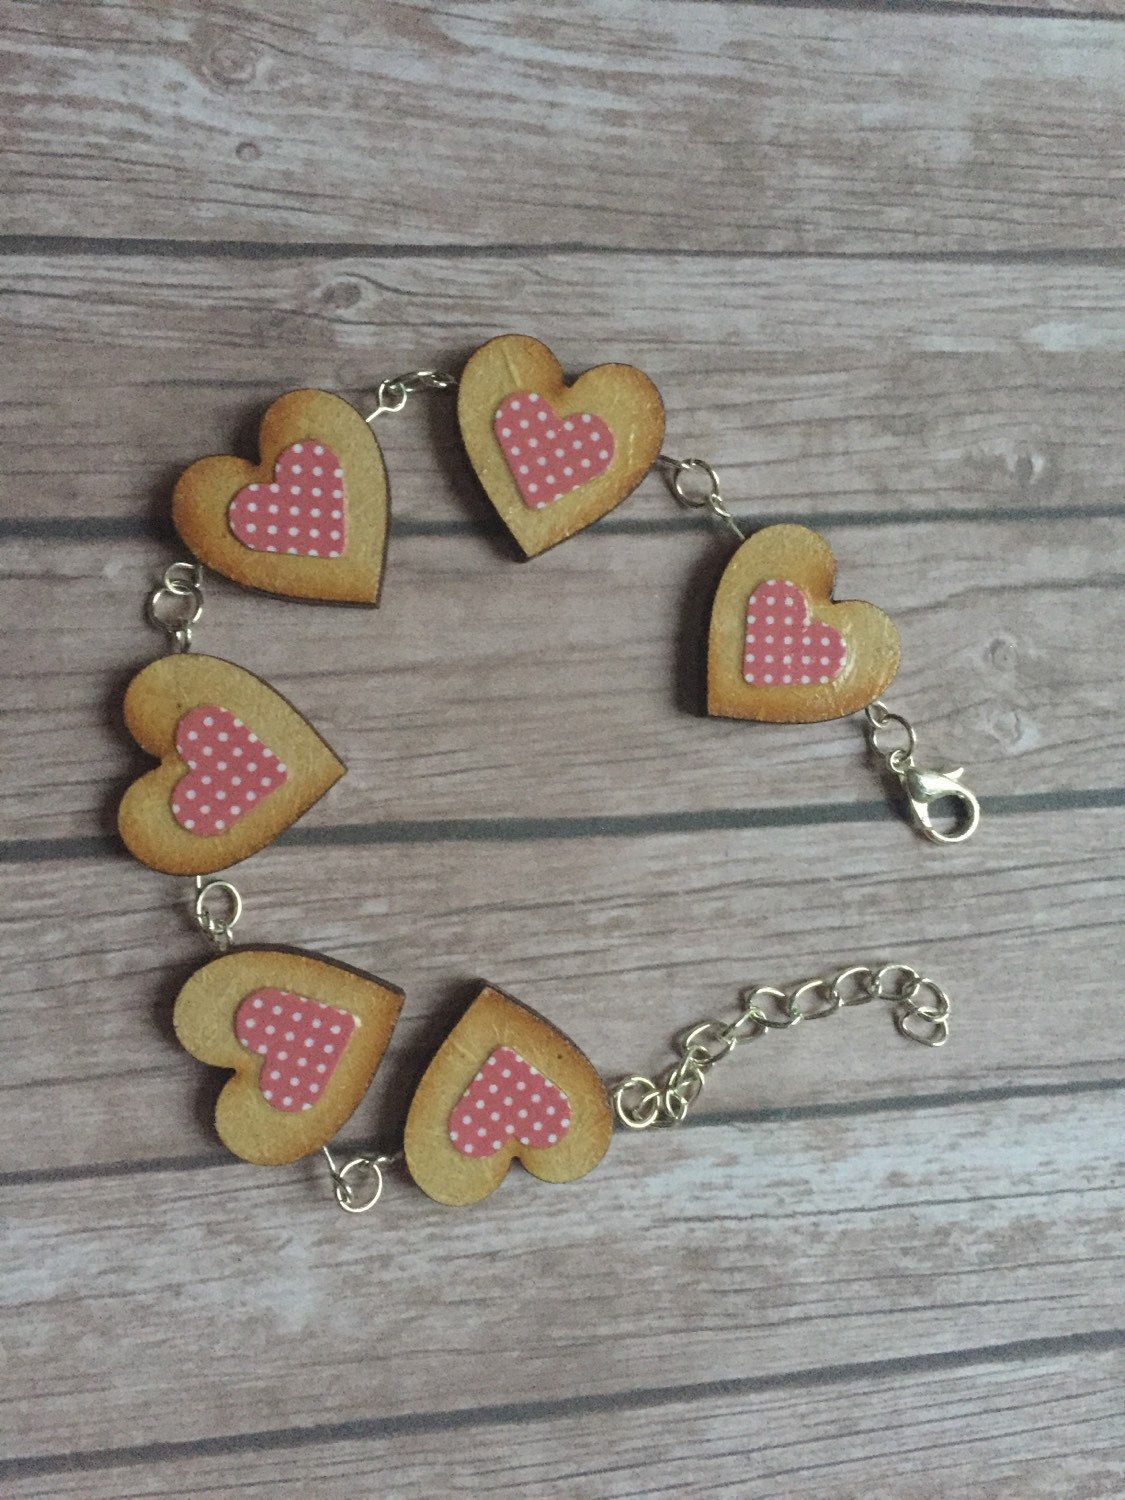 Handmade Boho Shabby Chic Wooden Heart Bracelet Statement Unusual Uk First Cl Xmas Gift